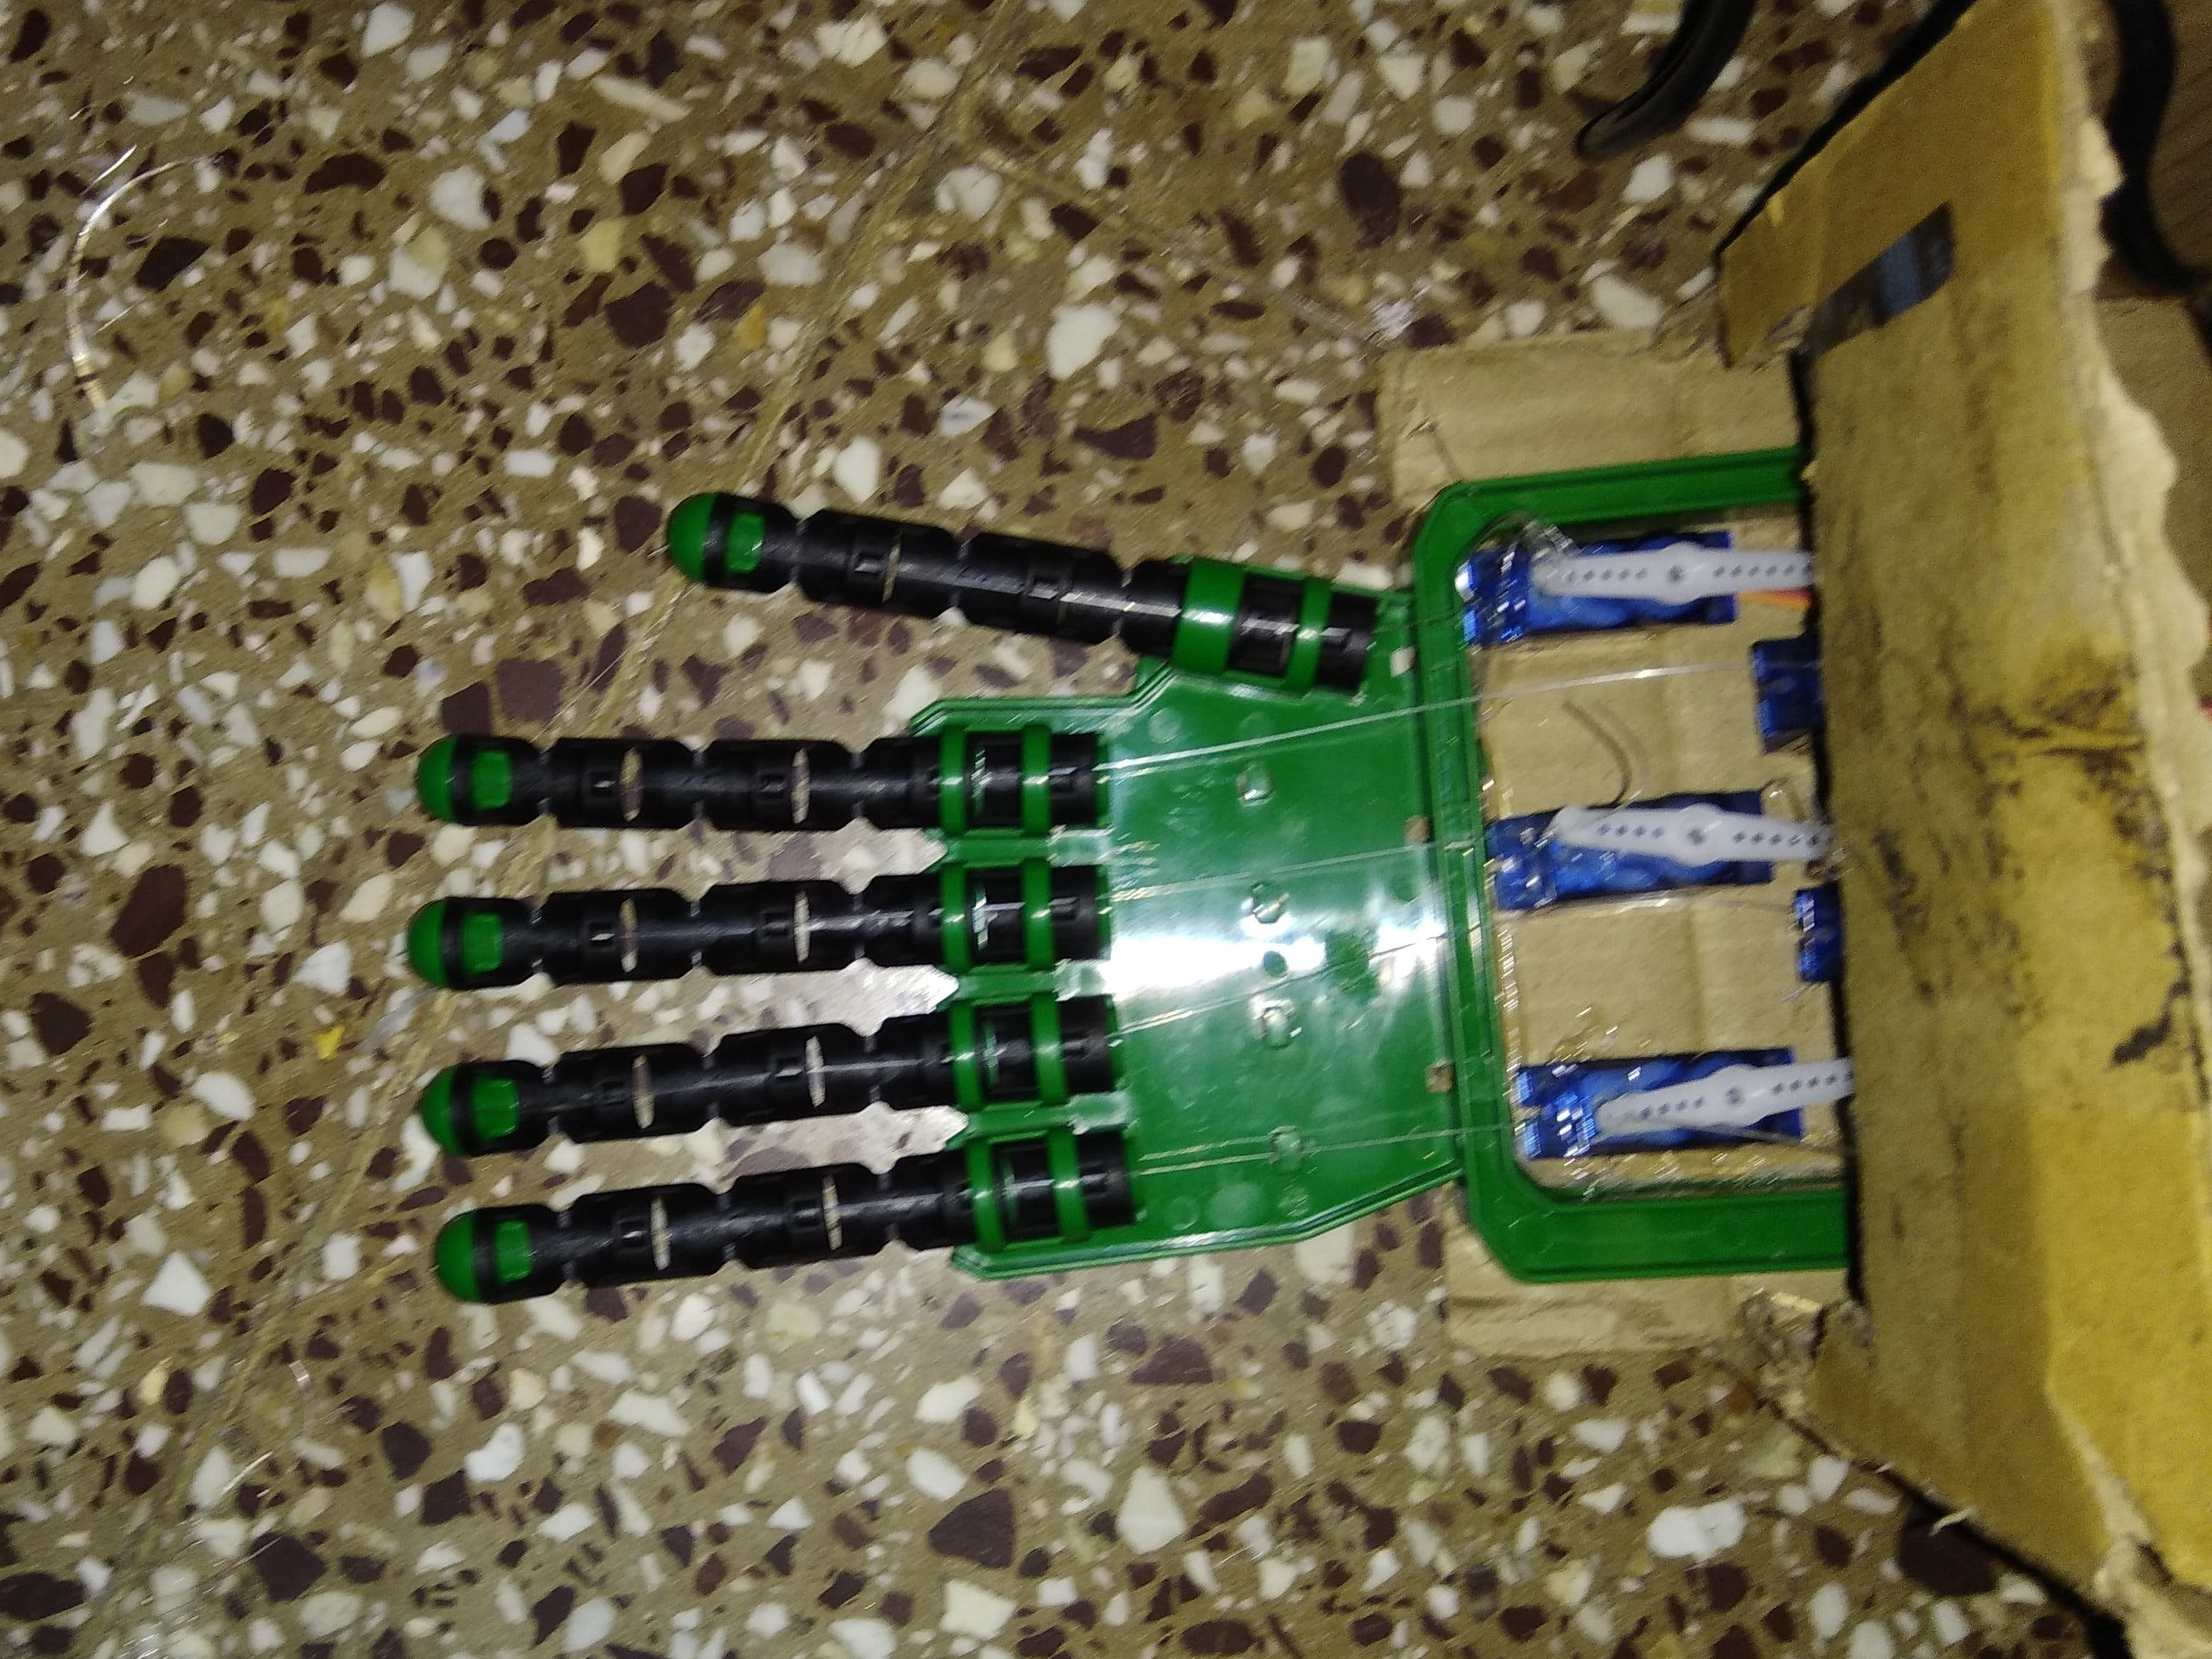 Gesture Controlled Robotic Hand